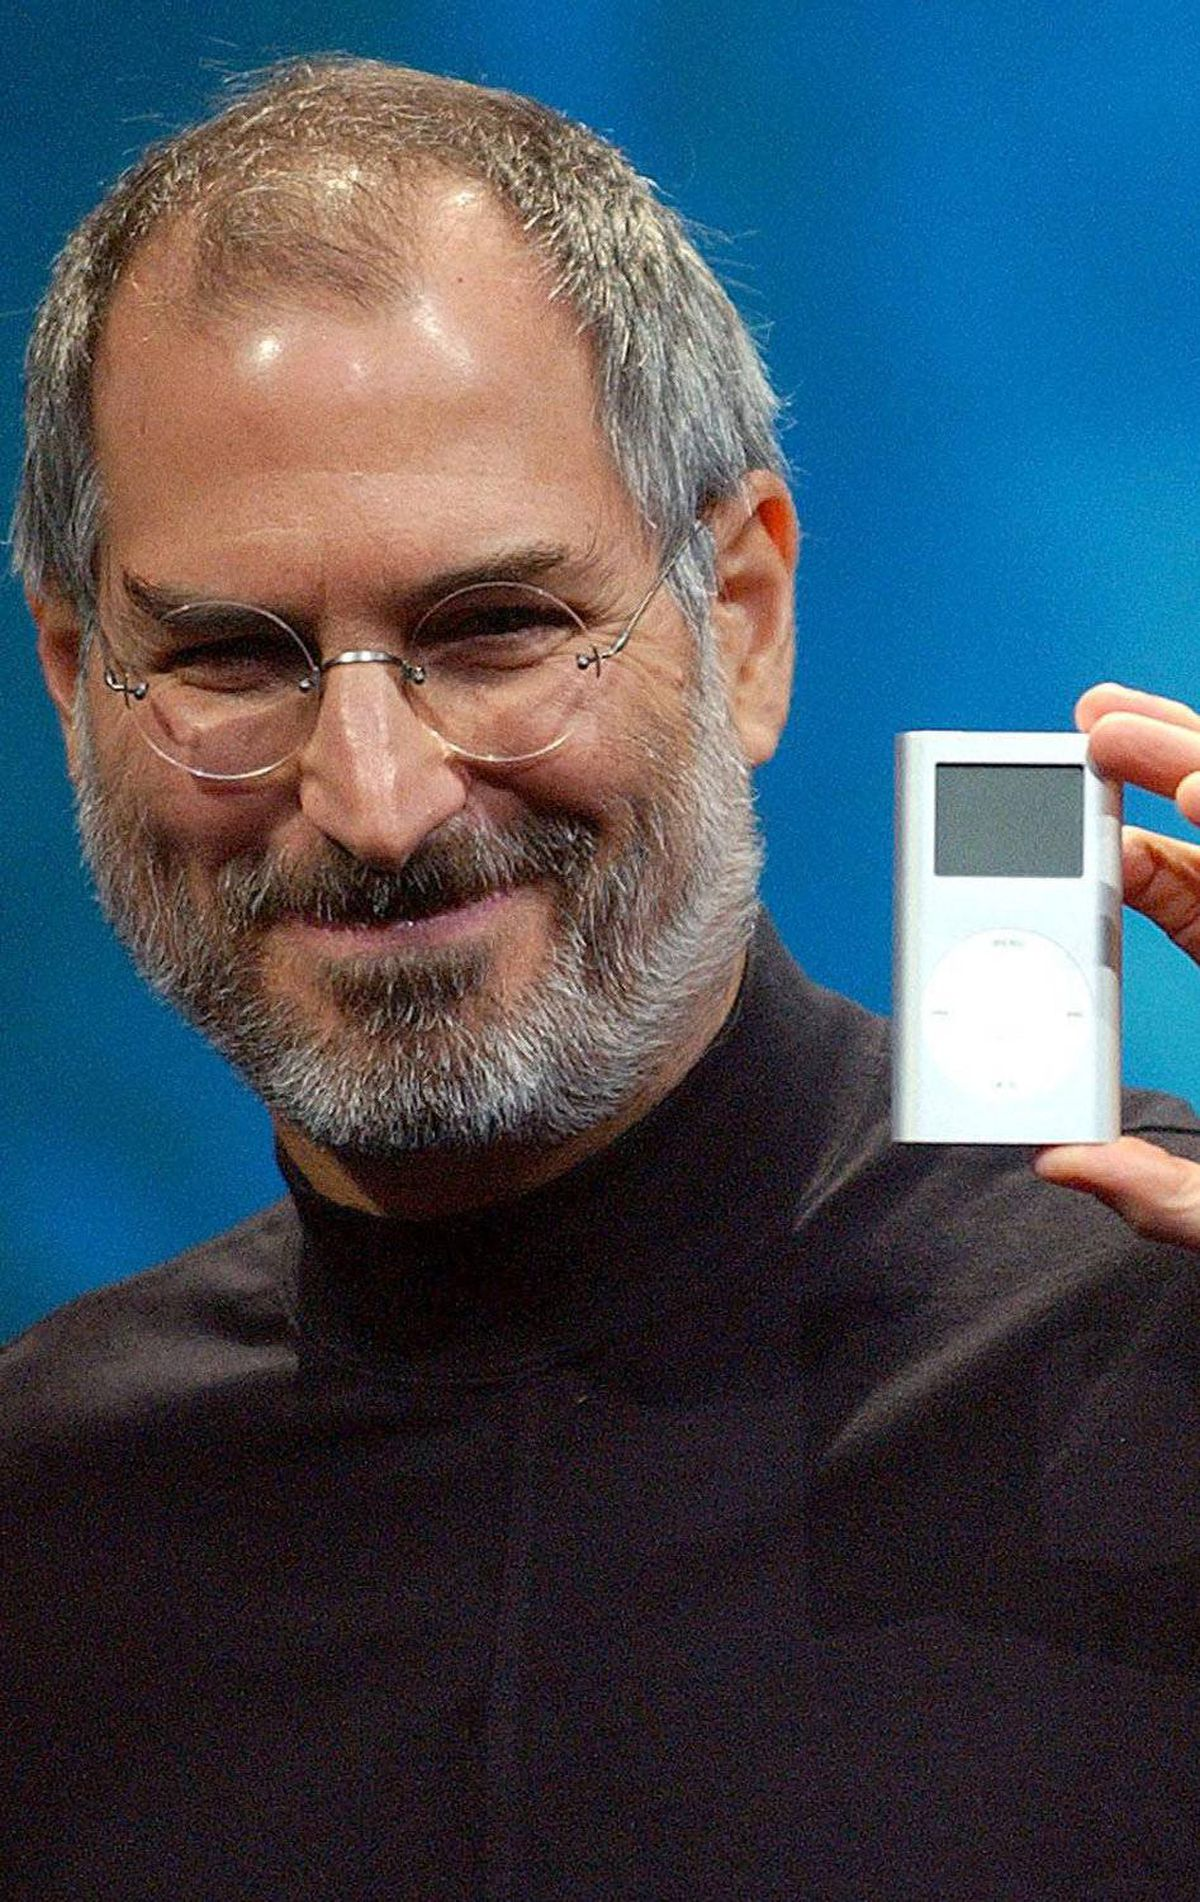 Apple CEO Steve Jobs displays his company's new product, the Mini-Ipod, at the Macworld Conference and Expo in San Francisco, Tuesday, Jan. 6, 2004. (AP Photo/Marcio Jose Sanchez)